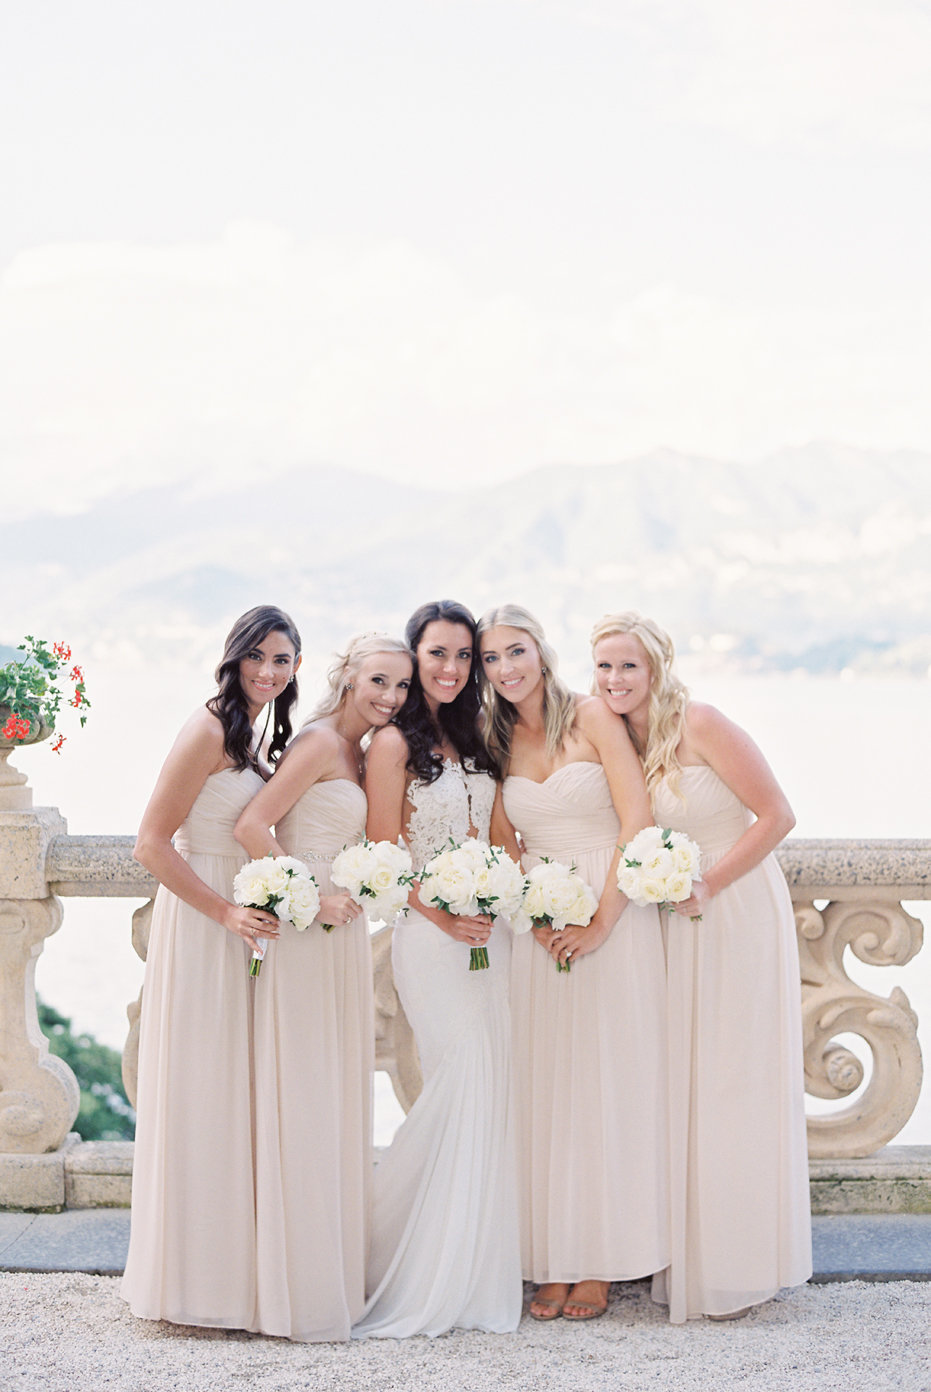 lake_como_italy_villa_balbianello_destination_wedding_melanie_gabrielle_059